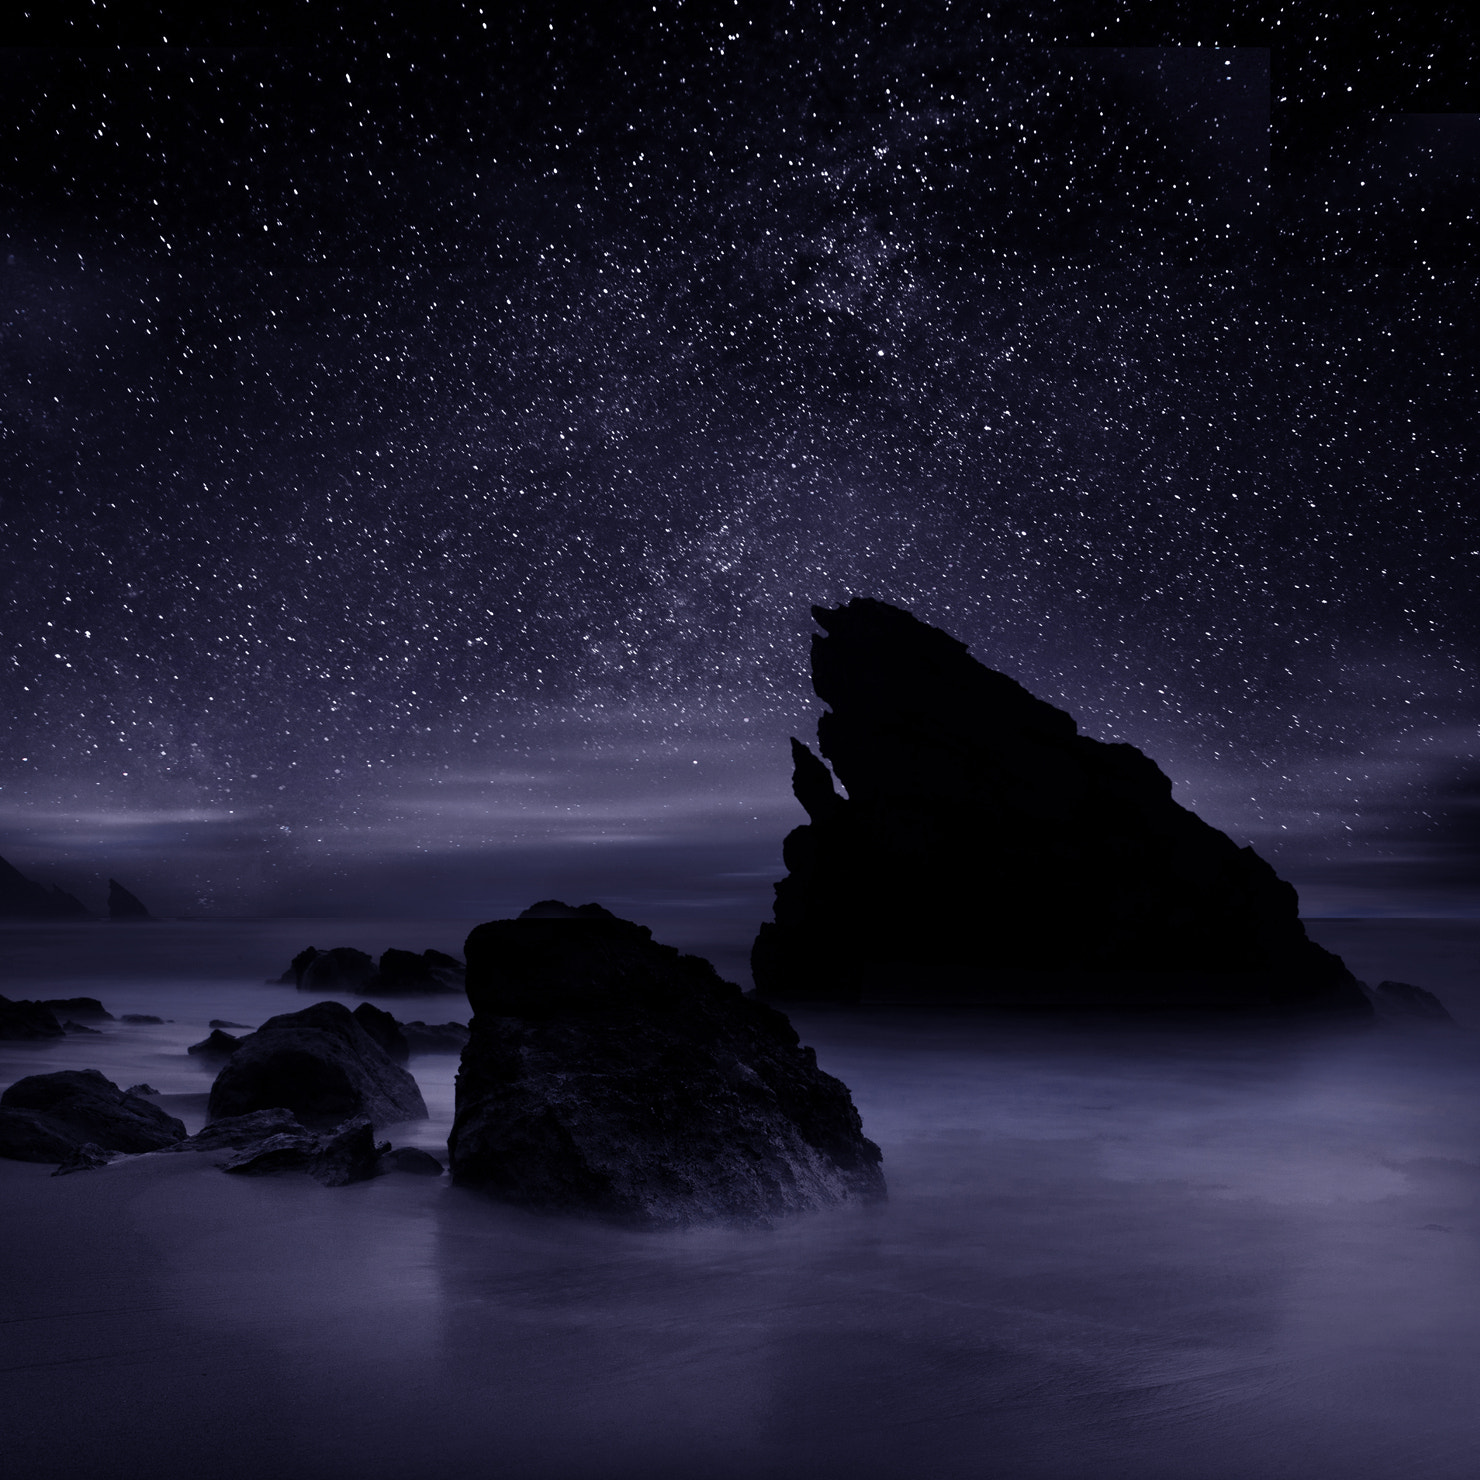 Photograph Mysterious night by Jorge Maia on 500px